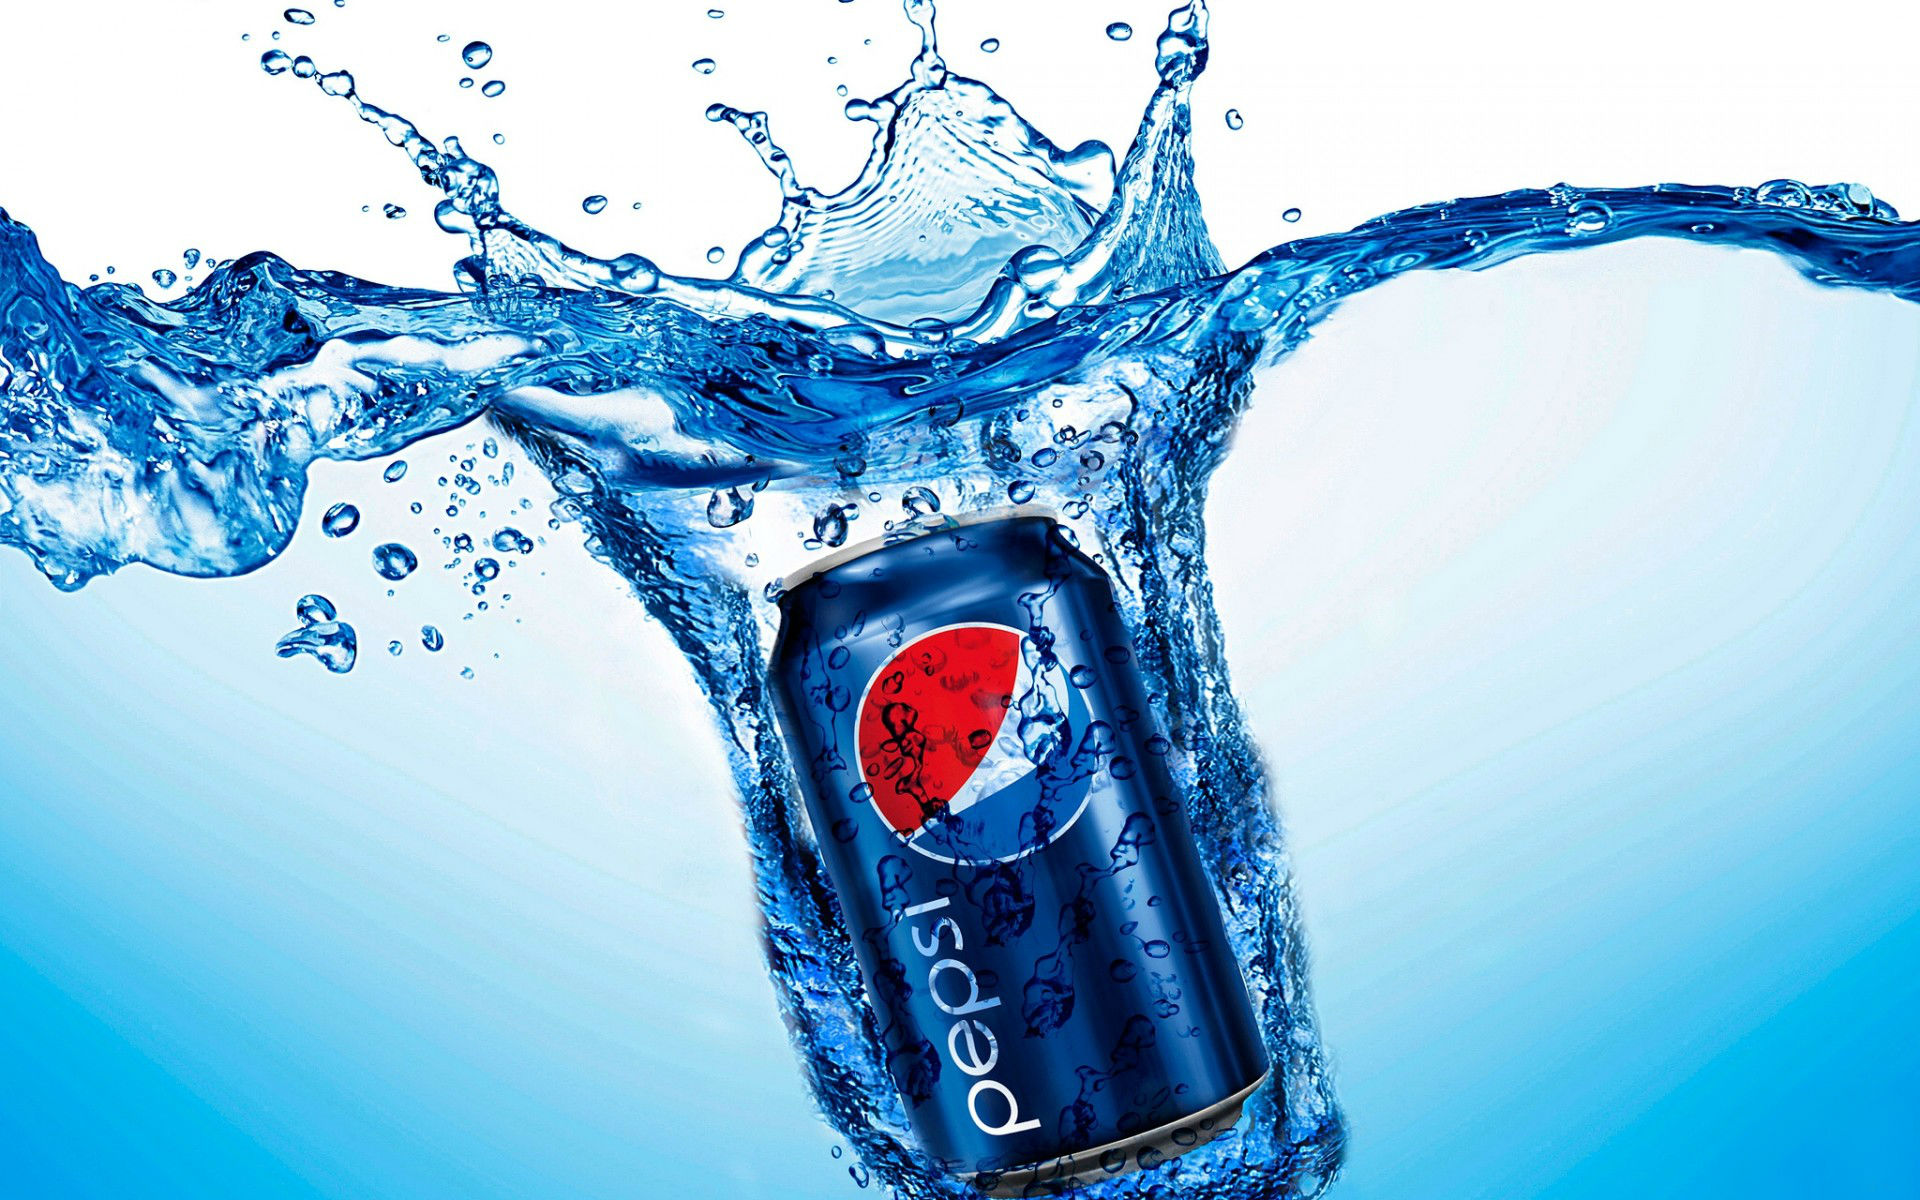 pepsi_can_in_water-wide